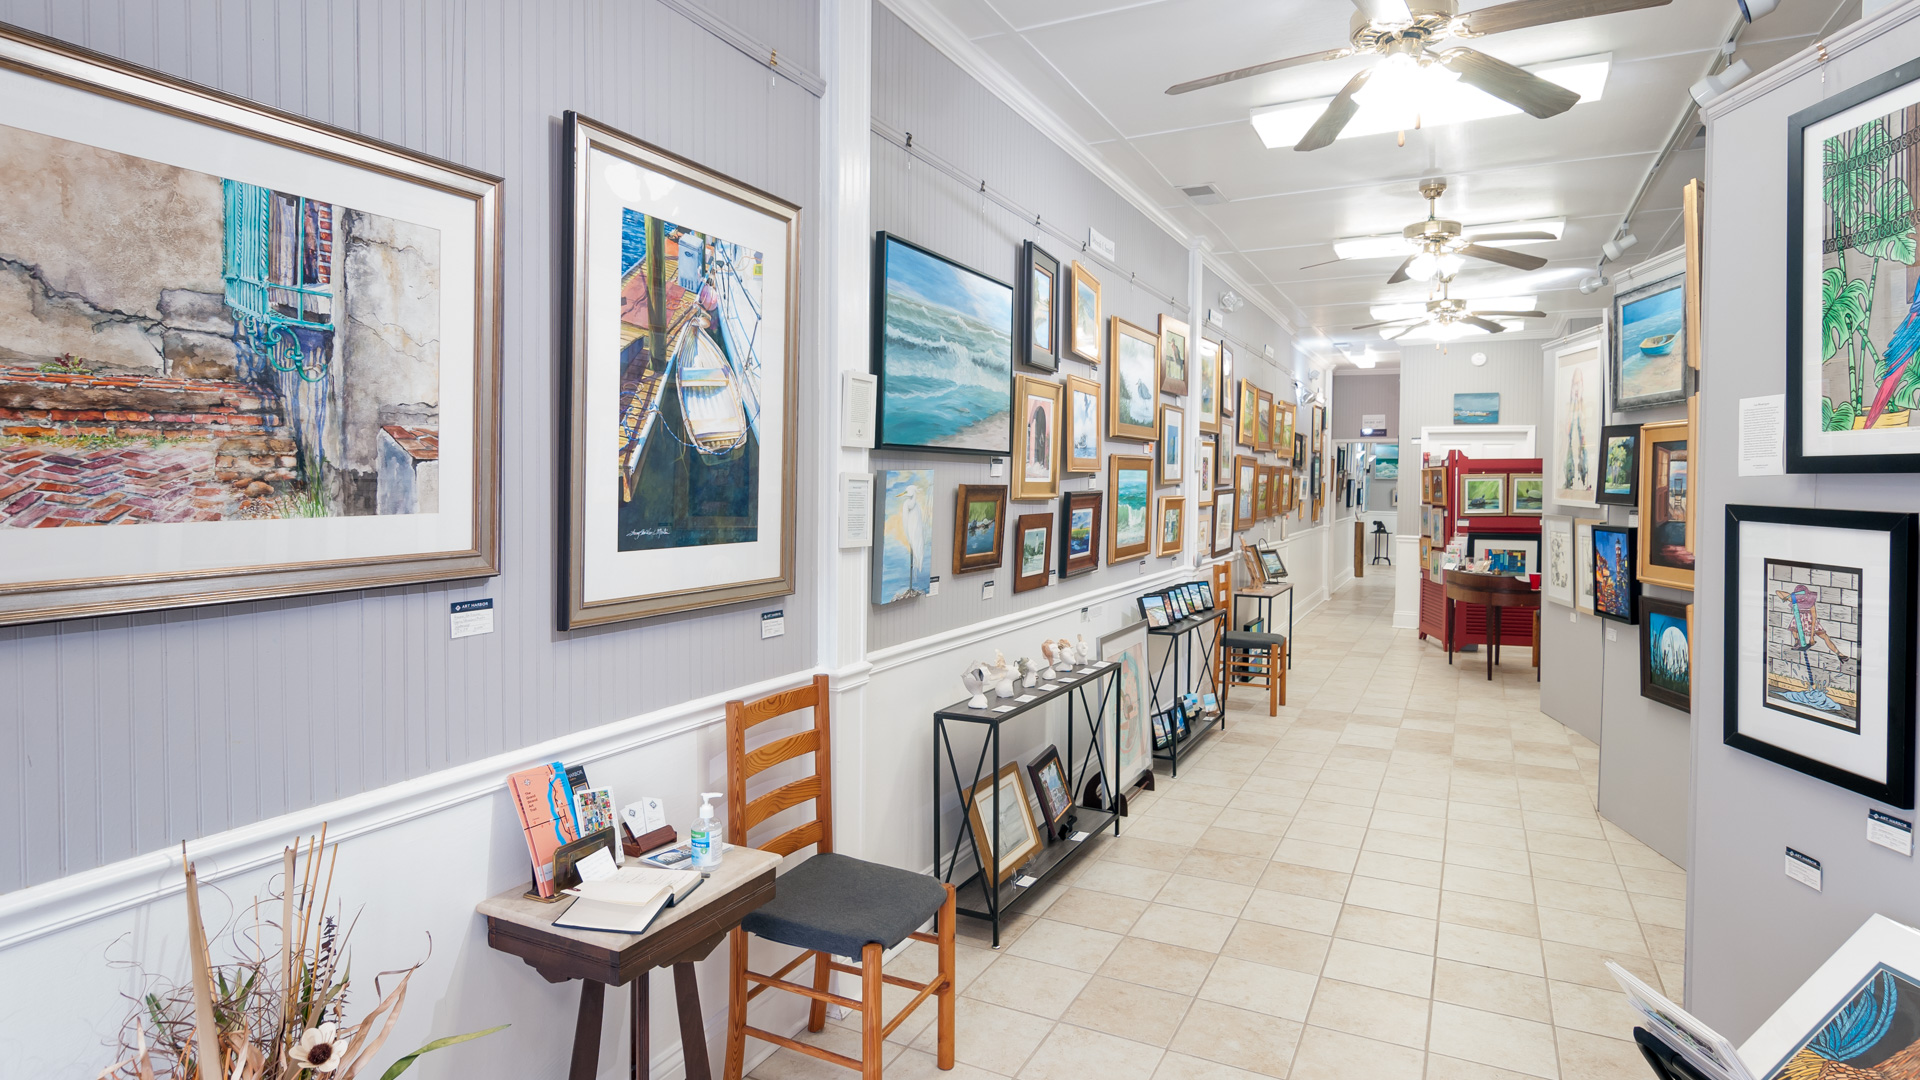 Welcome to Art Harbor Gallery!